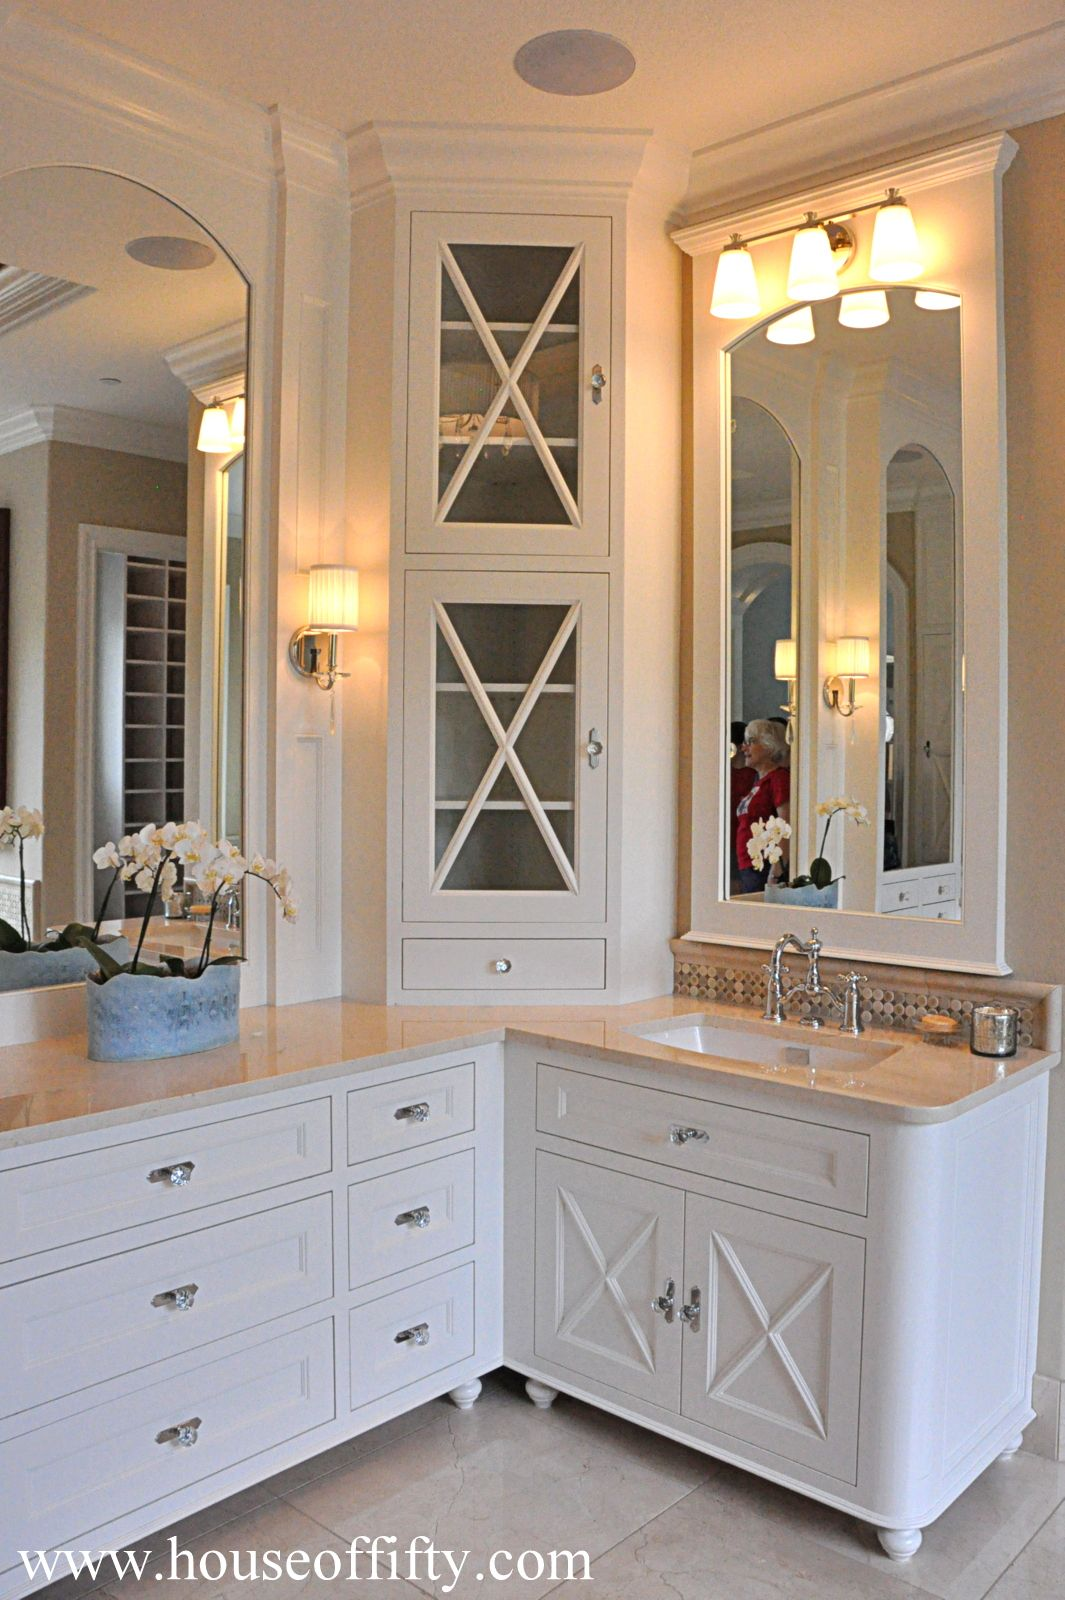 Badezimmer Eckschrank Pin By Ashley Polster On Bathroom Pinterest Badezimmer Rund